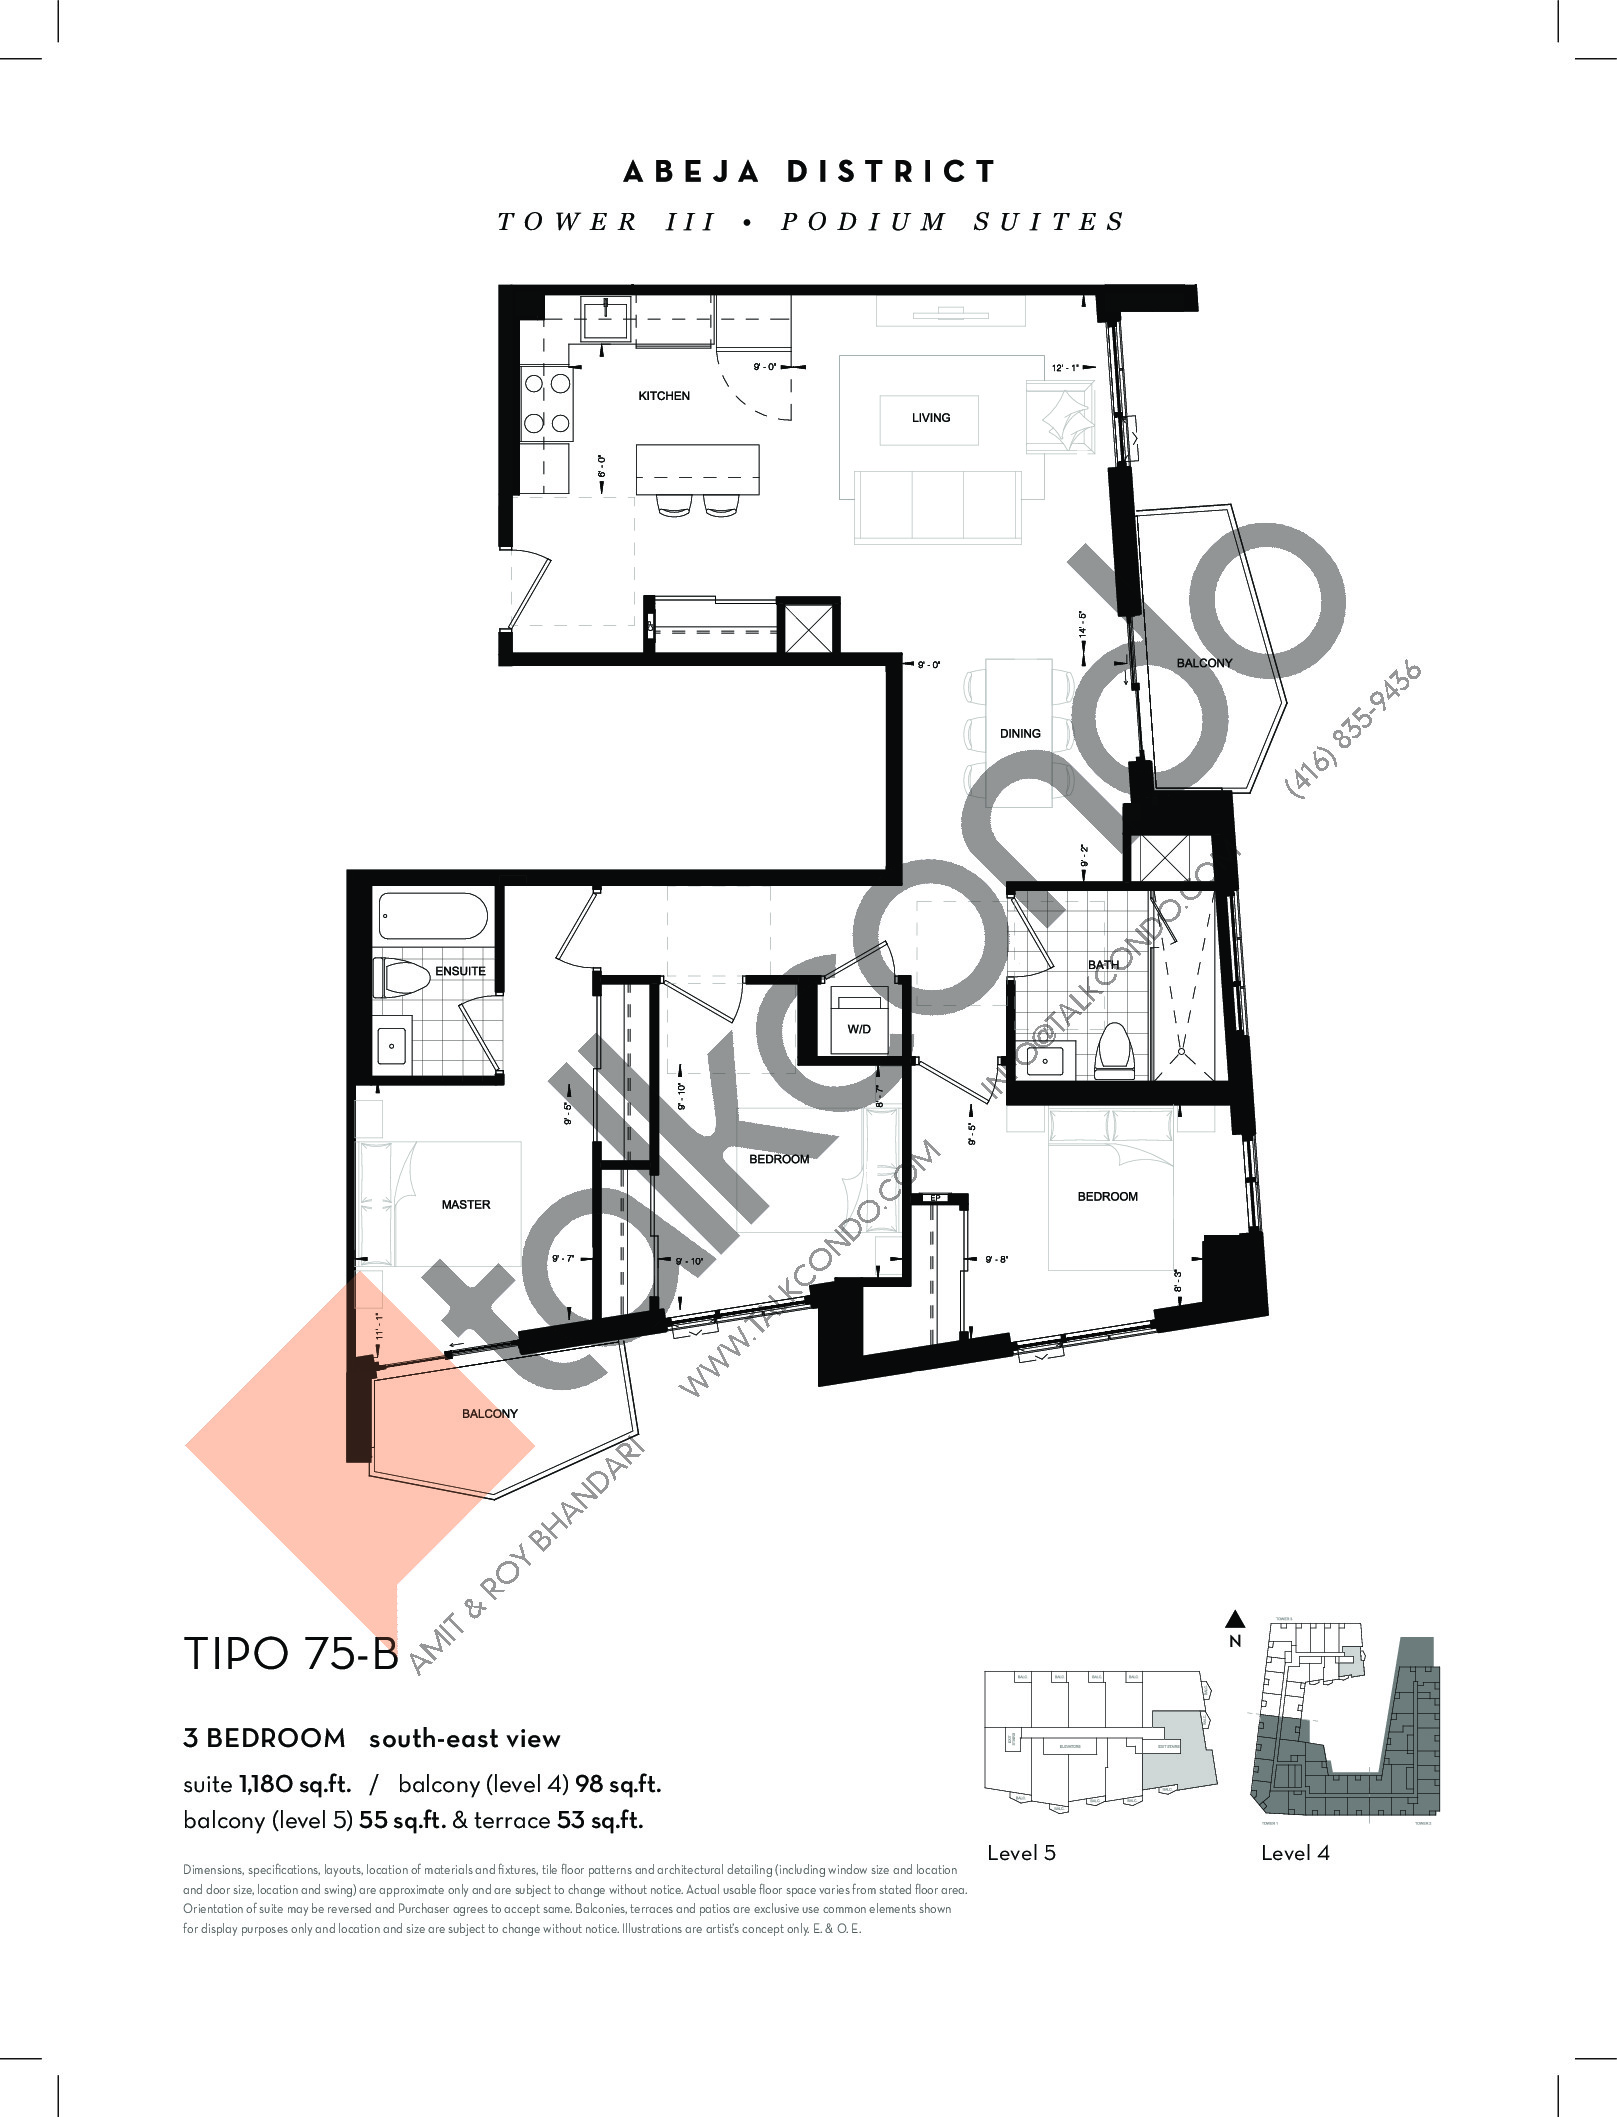 TIPO 75-B Floor Plan at Abeja District Condos Tower 3 - 1180 sq.ft